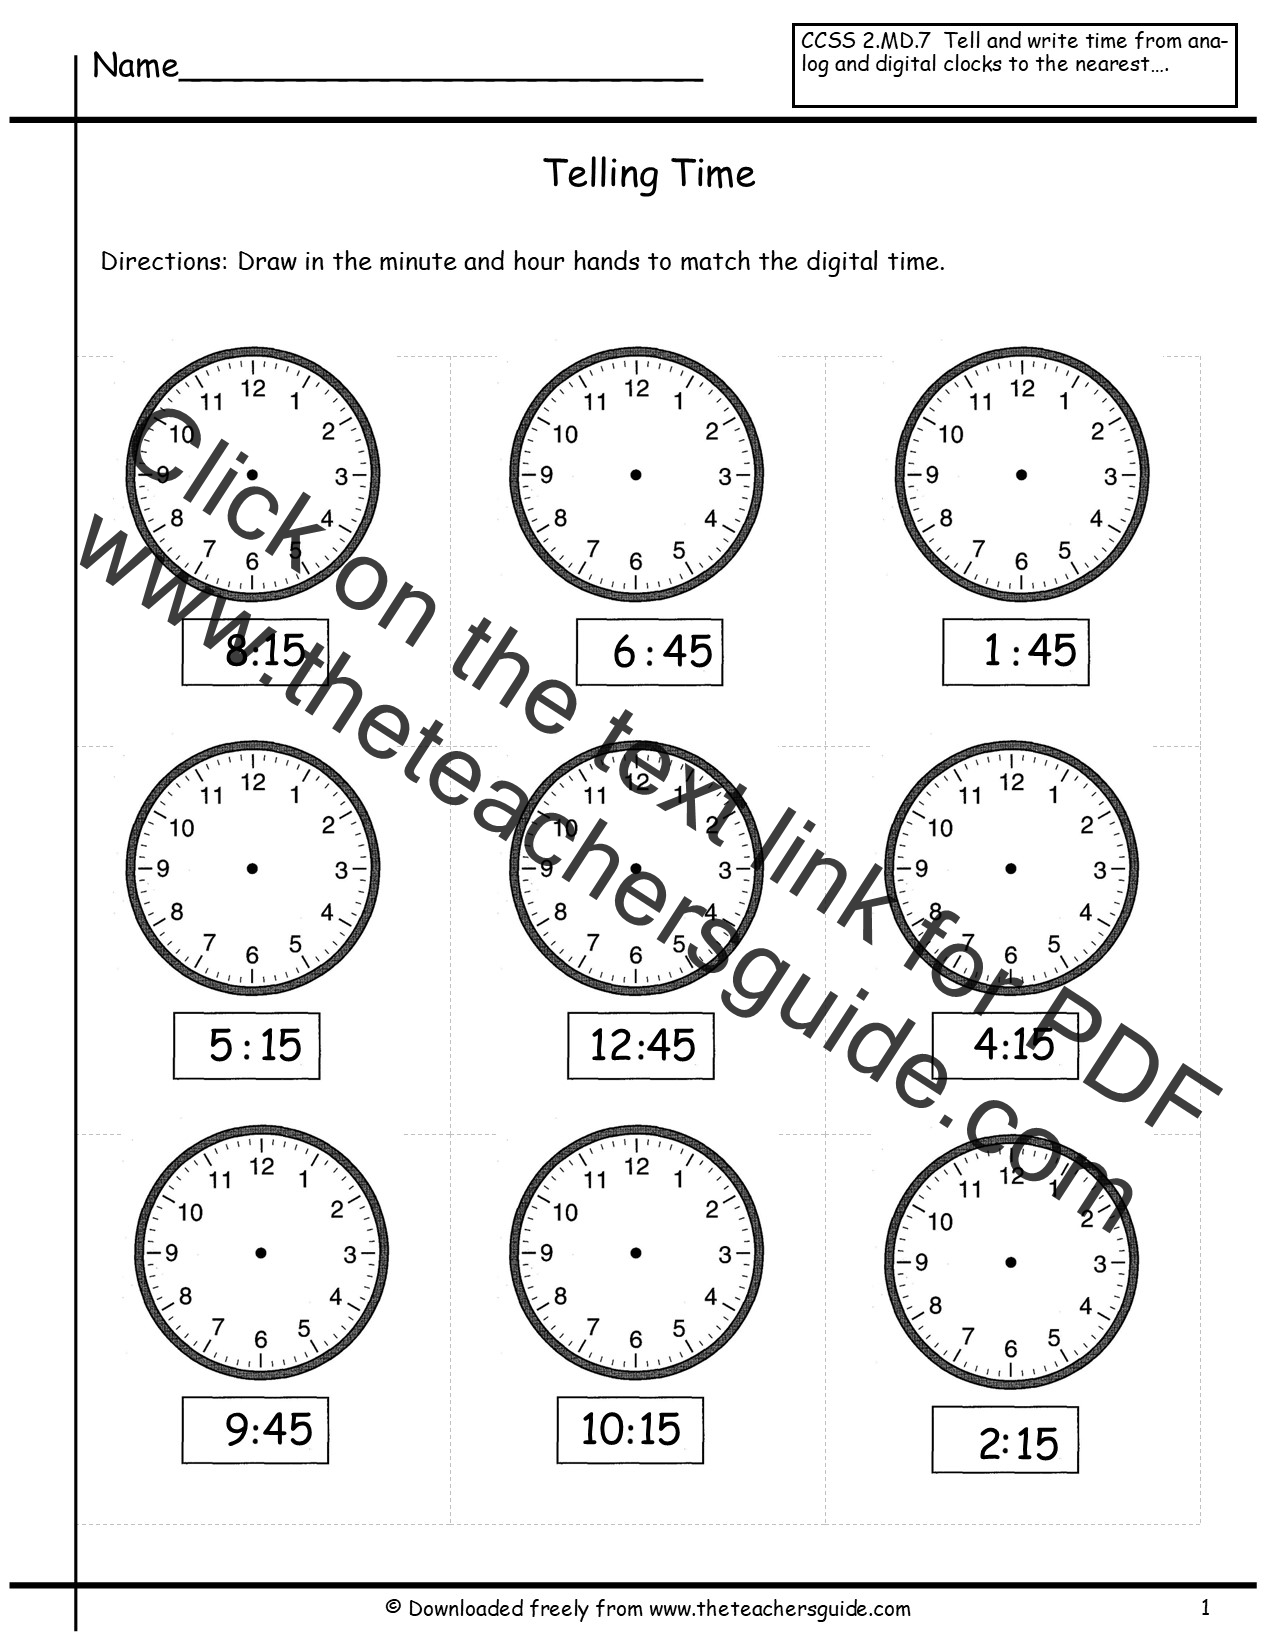 Telling Time To The Nearest Quarter Hour Worksheets